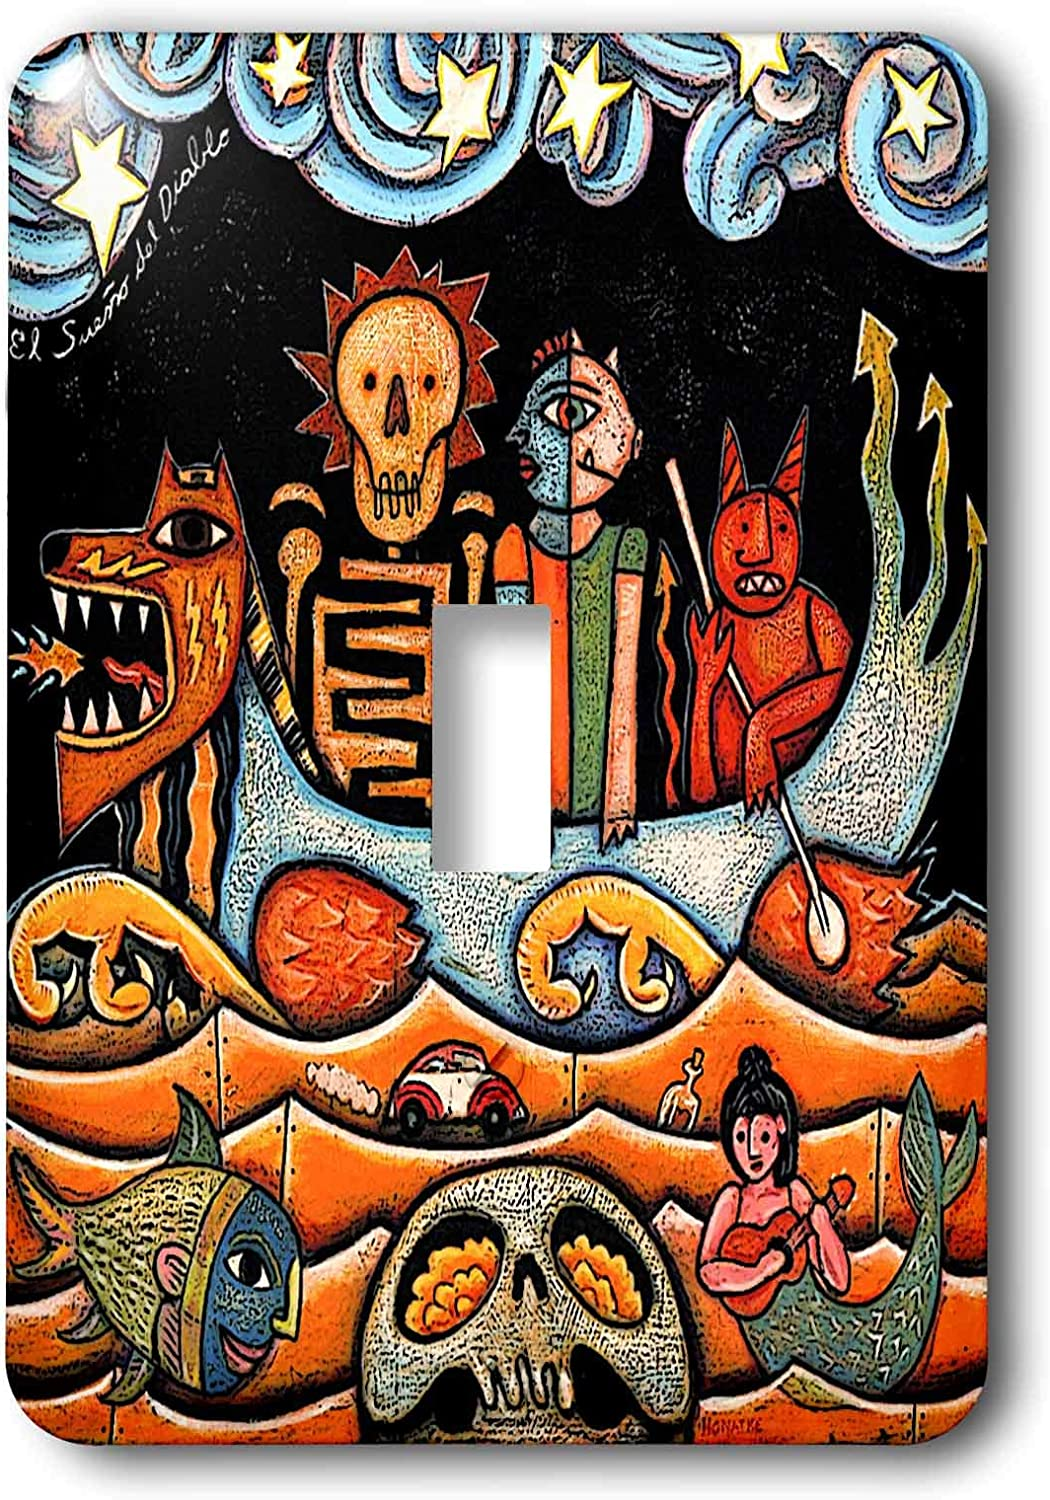 3drose Llc Lsp 21127 1 The Devil S Dream Folk Art Skulls Mexican Colorful Surrealism Single Toggle Switch Switch And Outlet Plates Amazon Com